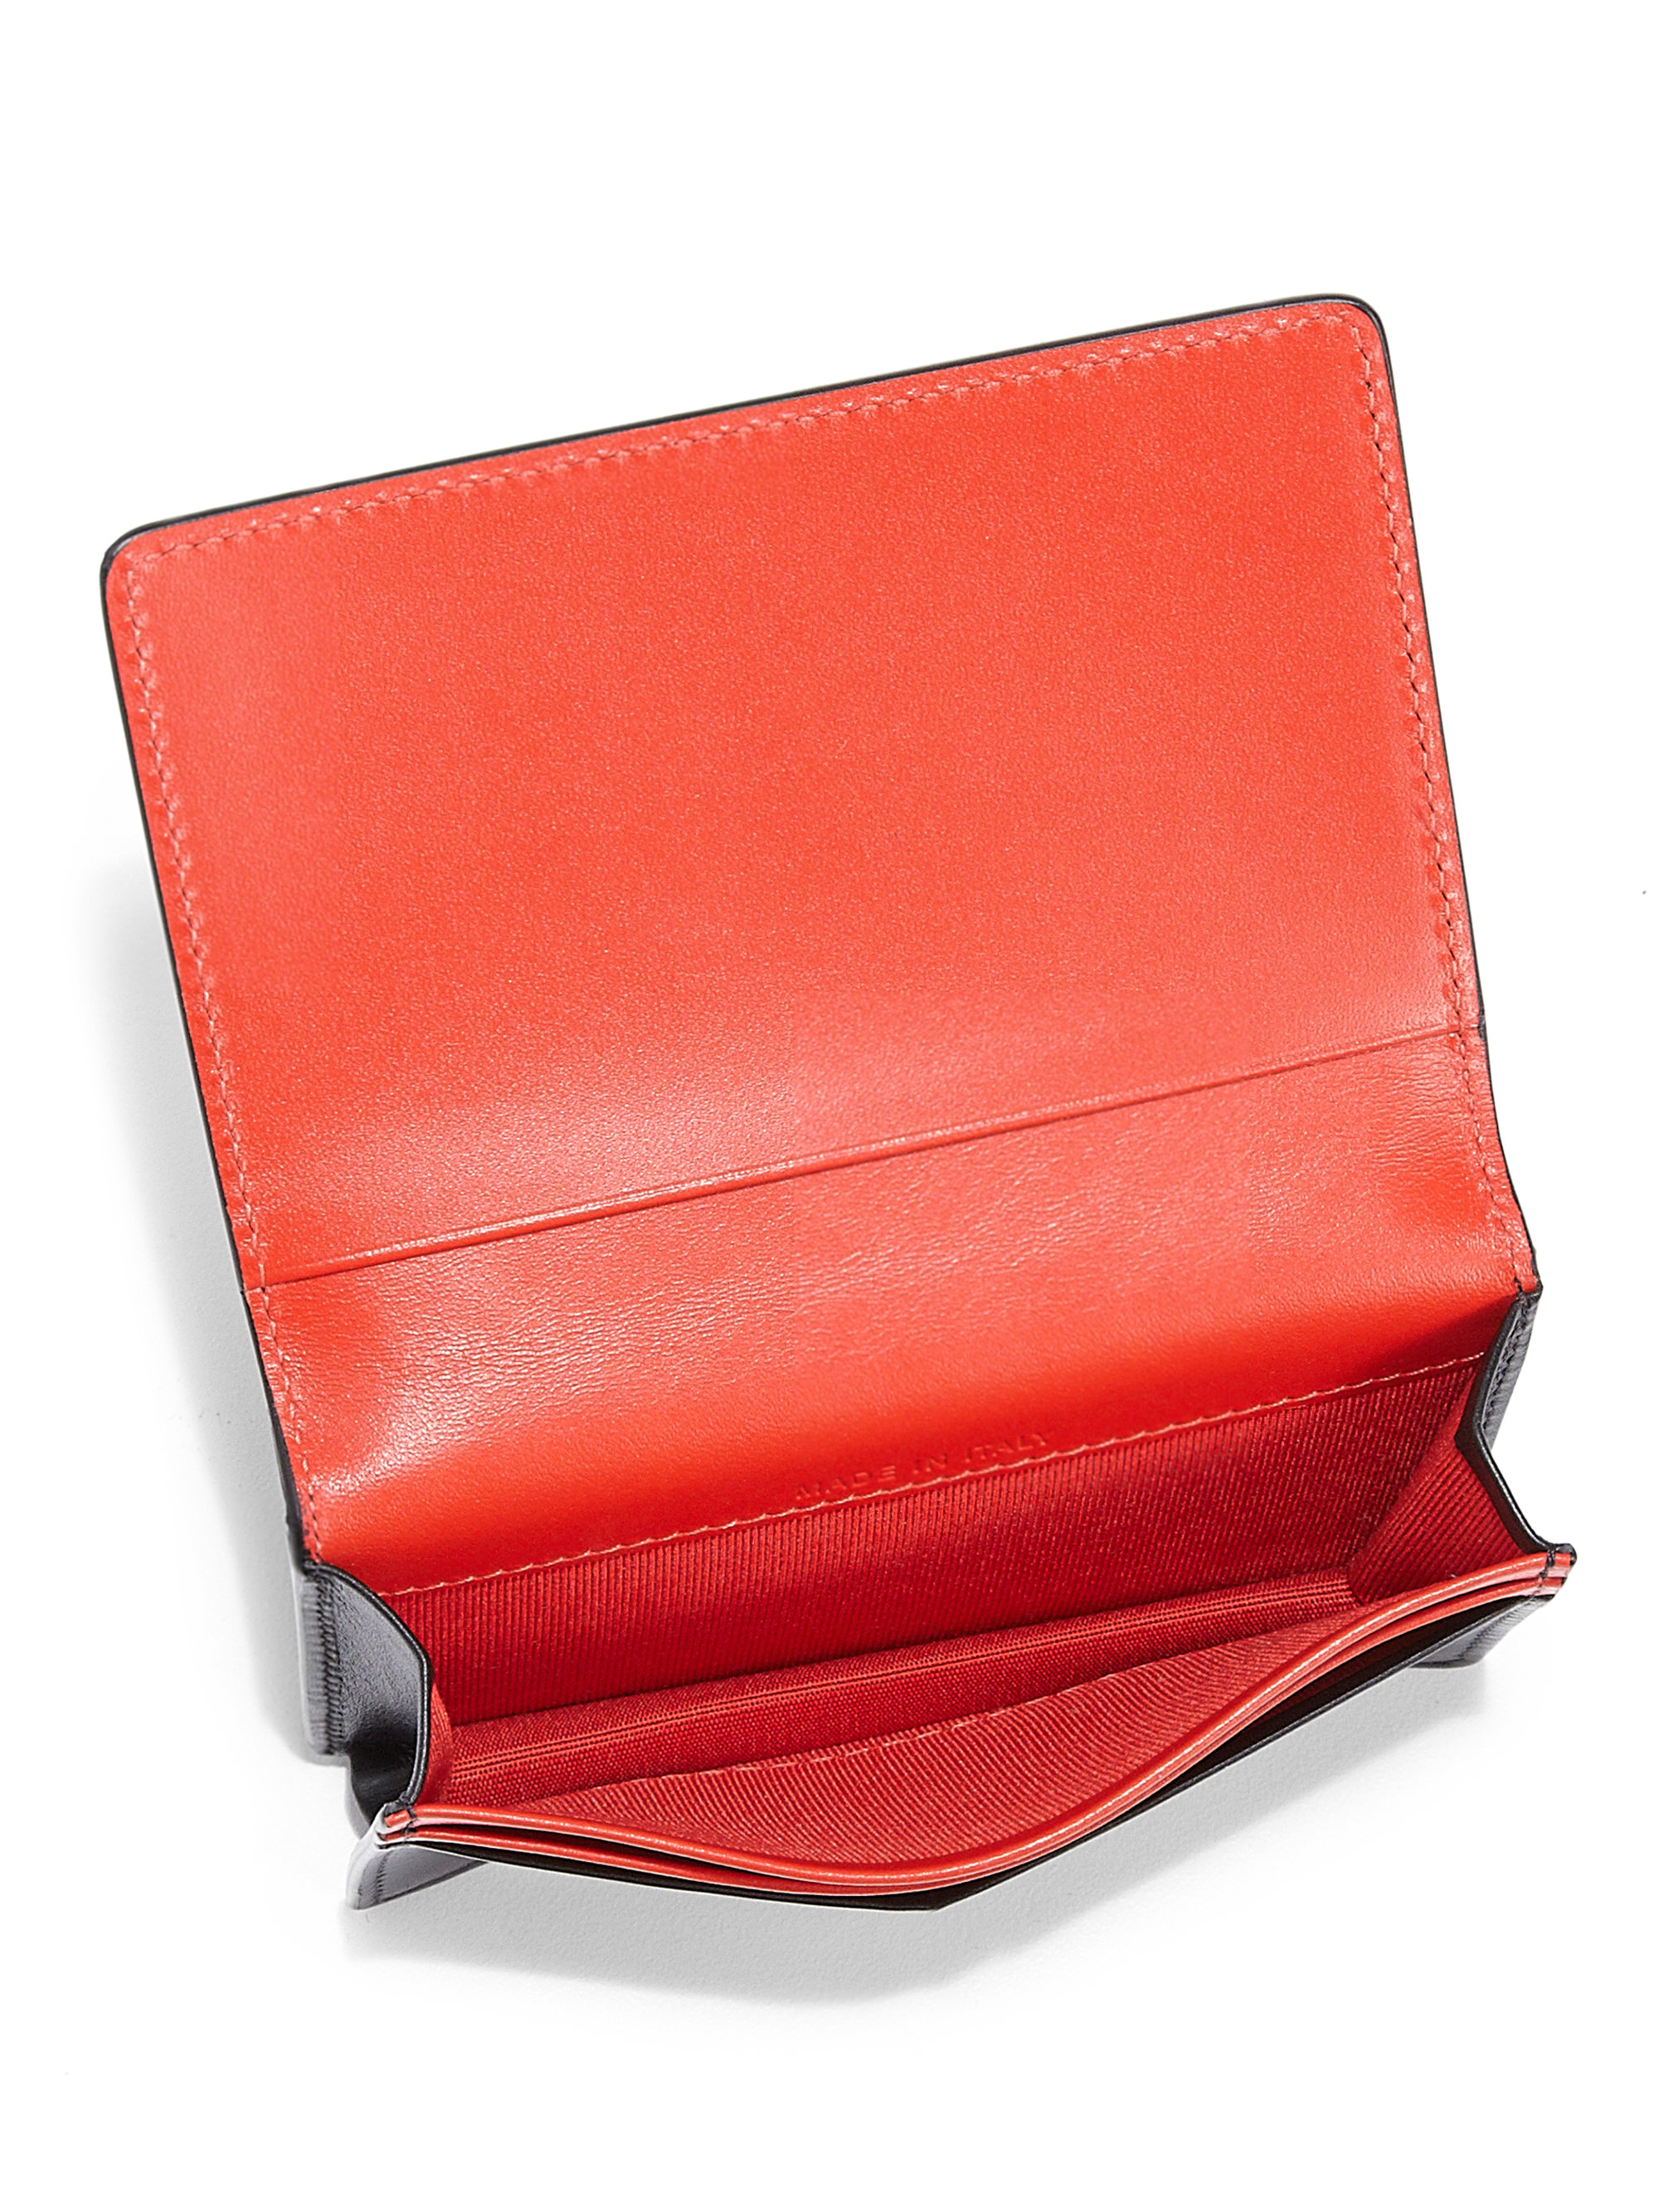 Christian louboutin Milos Spiked Leather Foldover Wallet in Black ... - prada wallet black + lacquer red